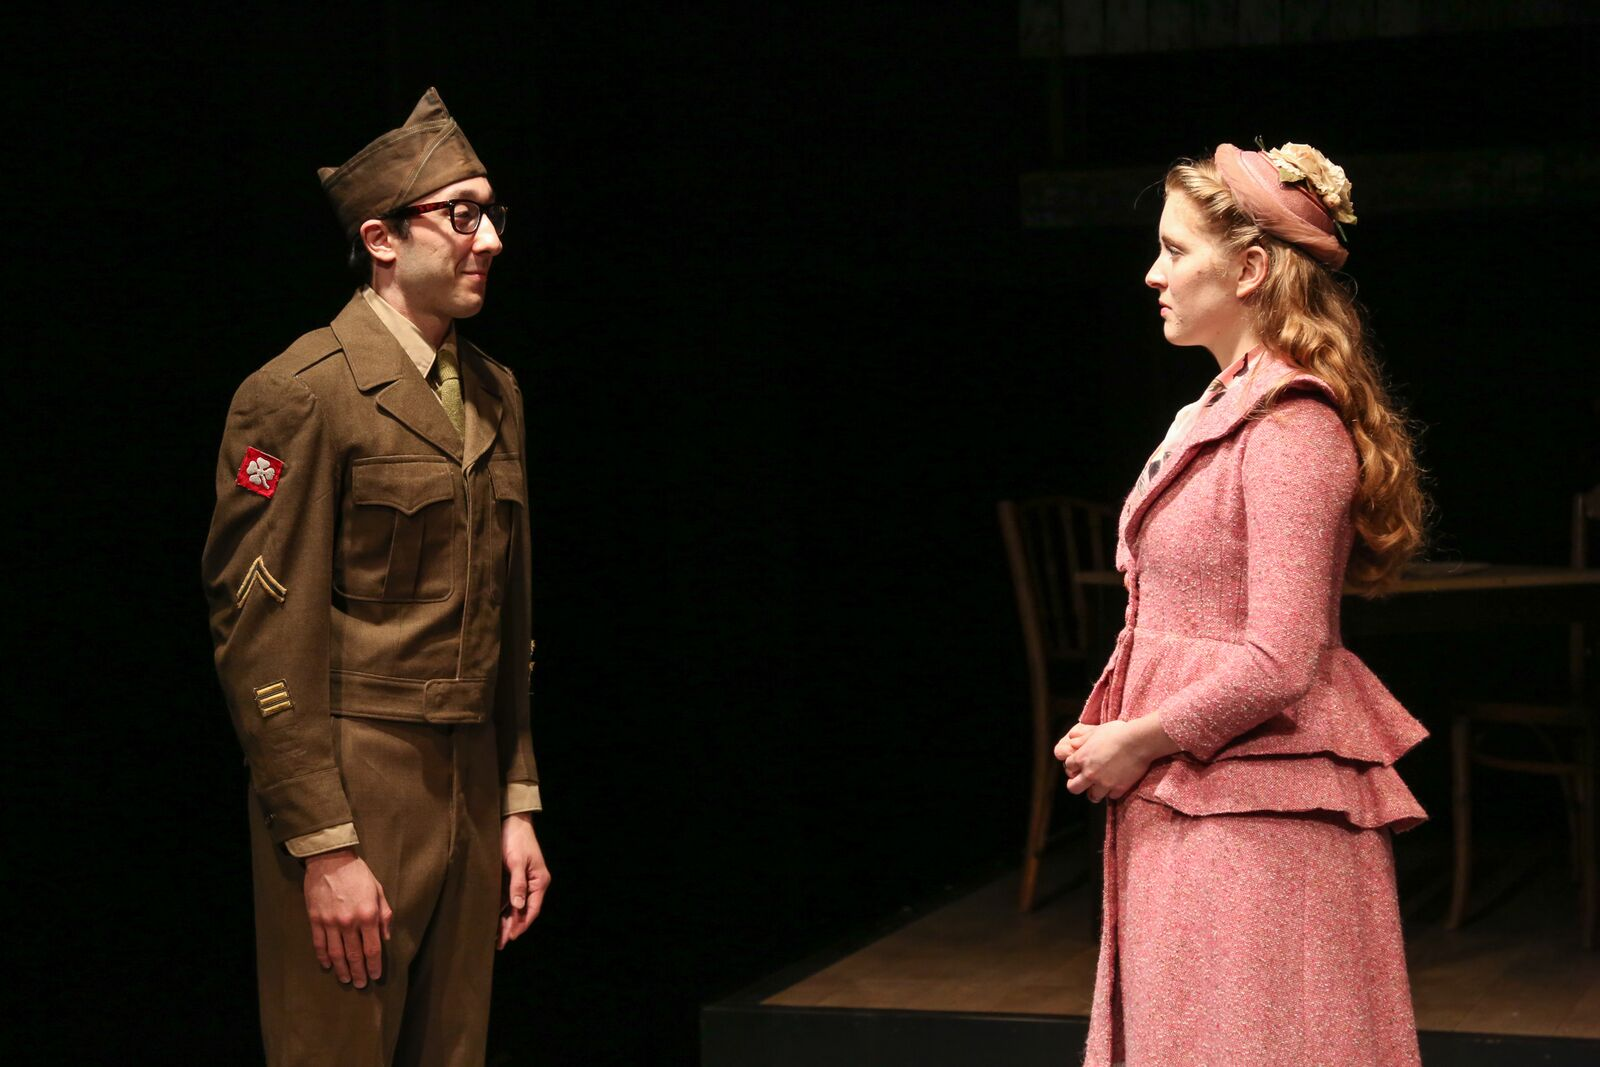 Letters to Sala , by Arlene Hutton at The Barrow Group featuring Britain Seibert.